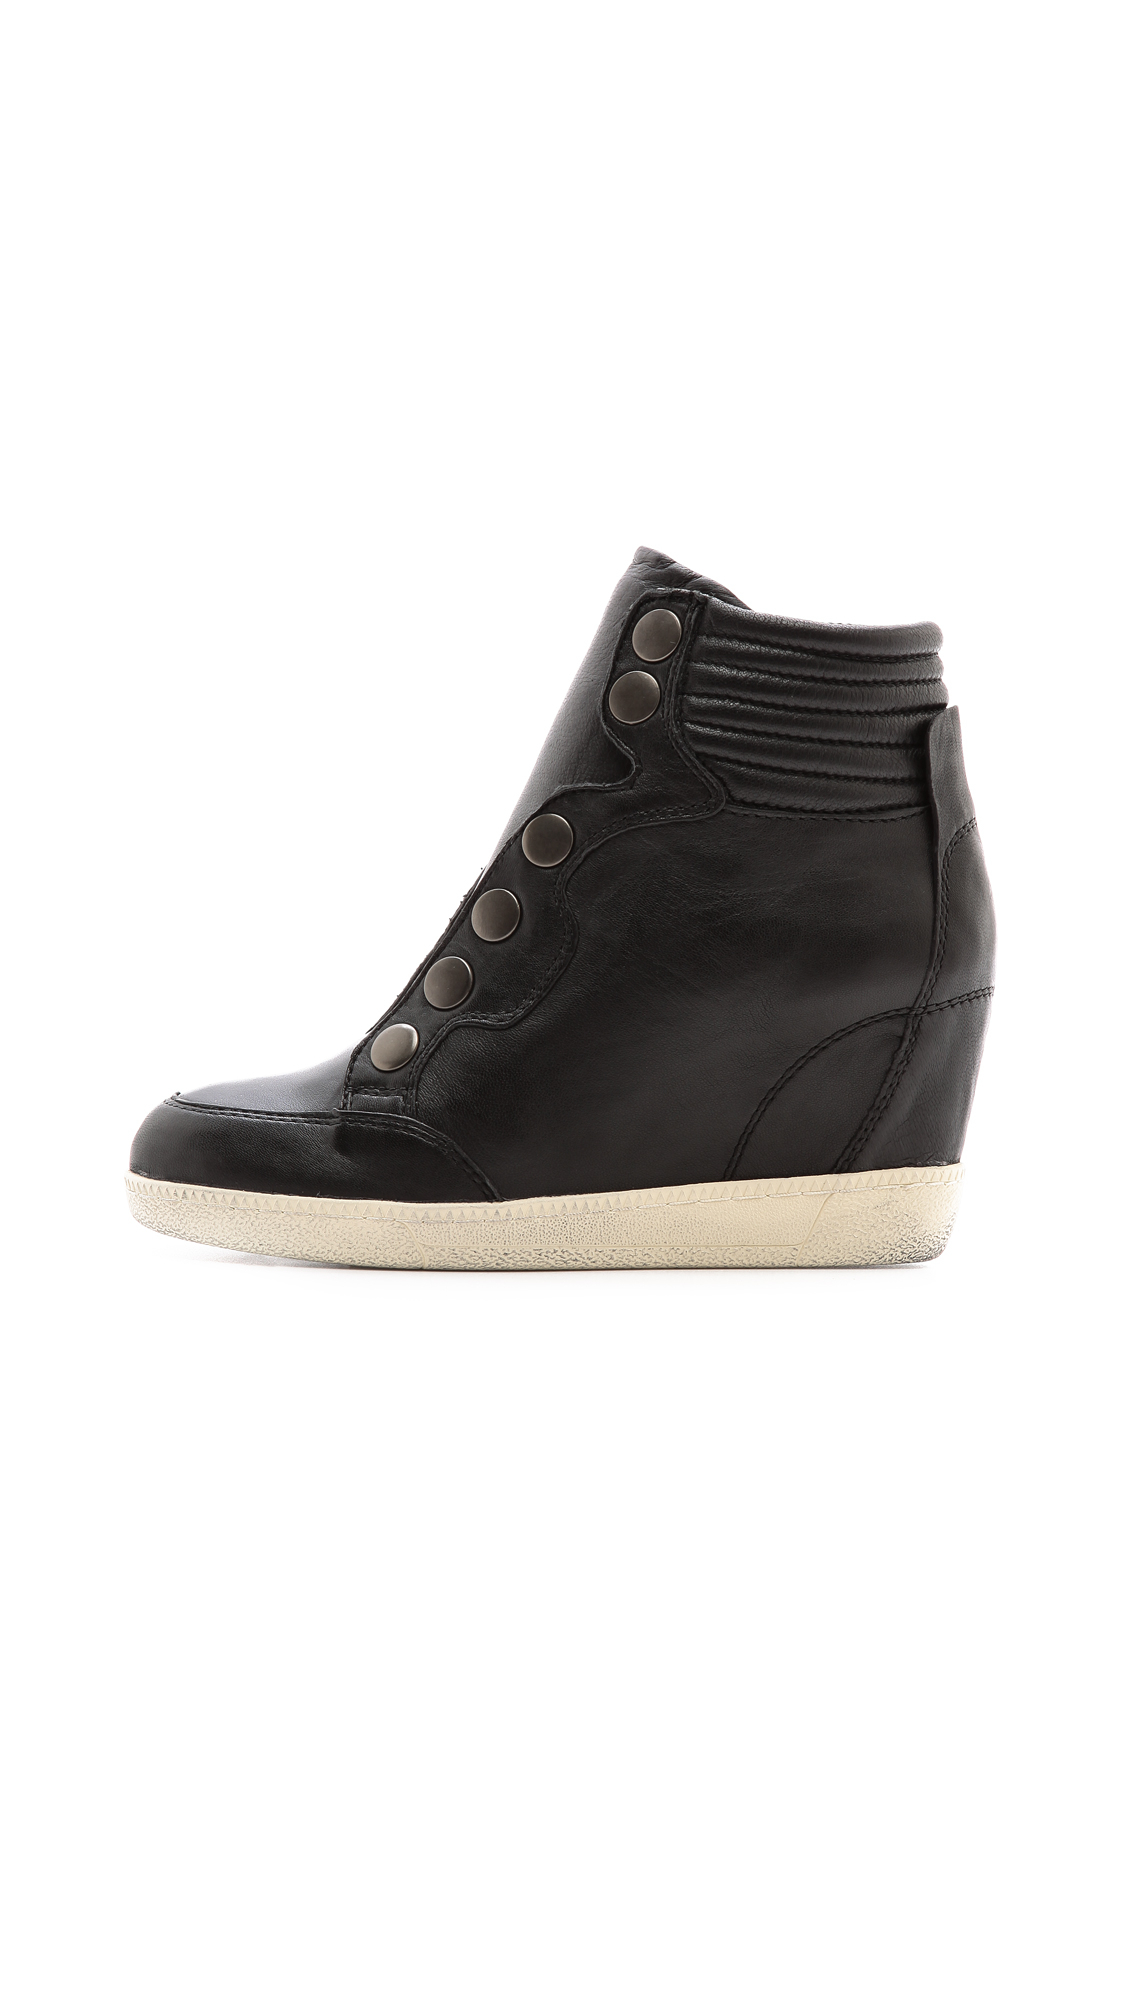 Black and white leather and suede hi-top sneakers from Adidas Originals featuring a round toe, a lace-up front fastening, stitching details, a padded ankle and a high wedge heel. Designer Style ID S